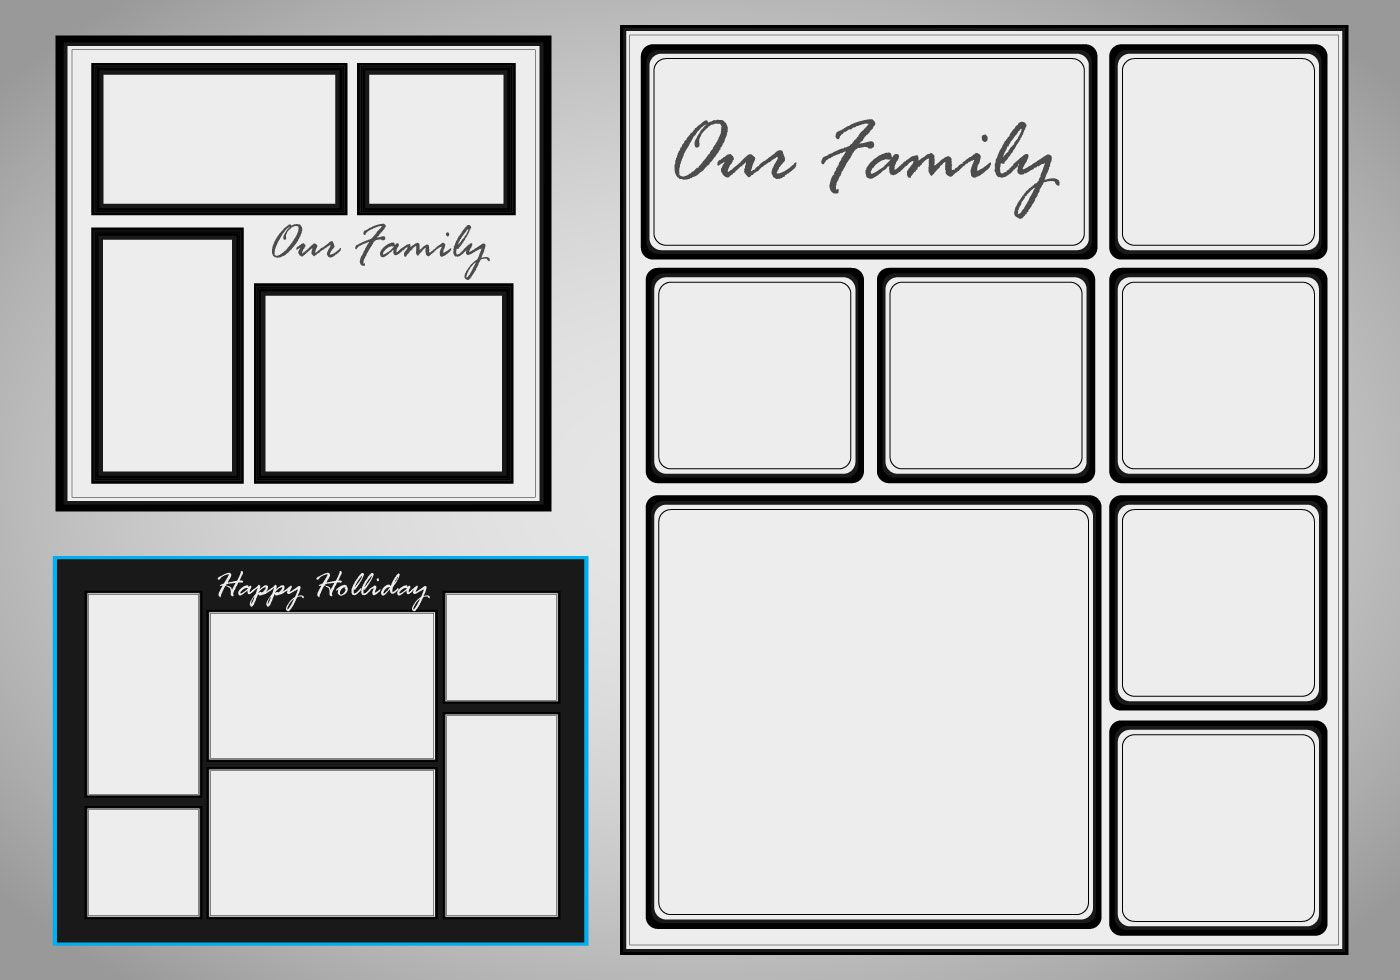 008 Stupendou Free Picture Collage Template Highest Clarity  Photo After Effect Maker DownloadFull